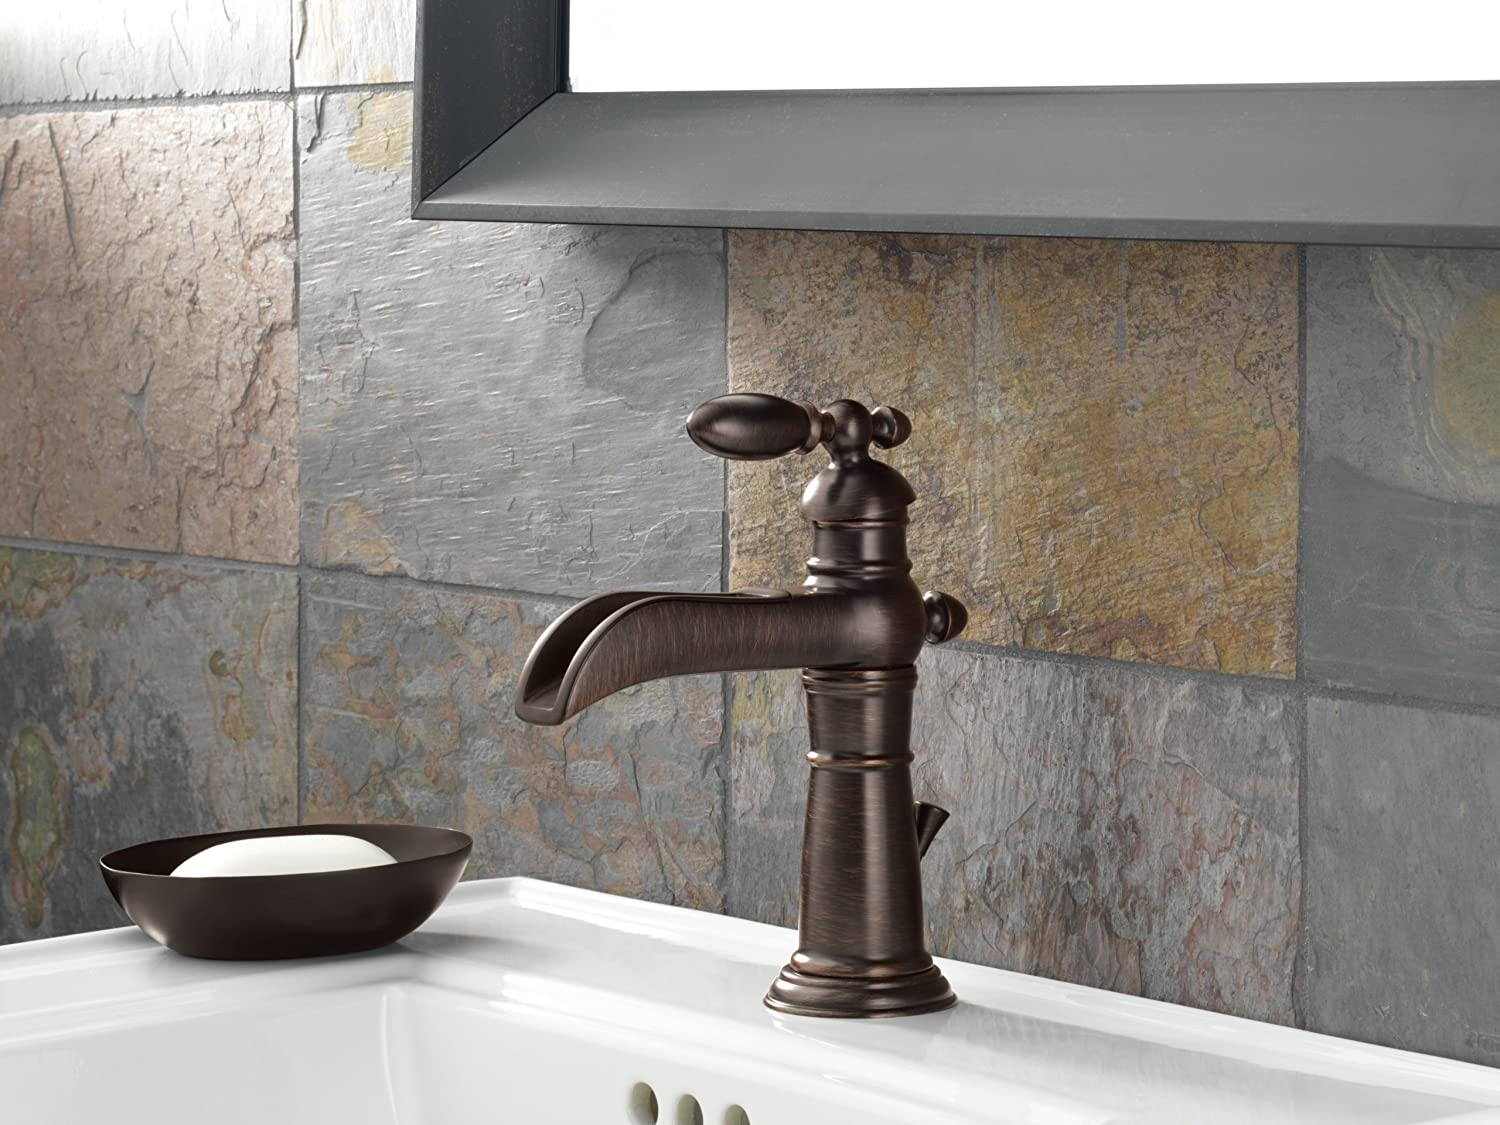 Delicieux Delta Faucet 554LF RB Victorian Single Handle Single Hole Waterfall Bathroom  Faucet, Venetian Bronze   Touch On Bathroom Sink Faucets   Amazon.com